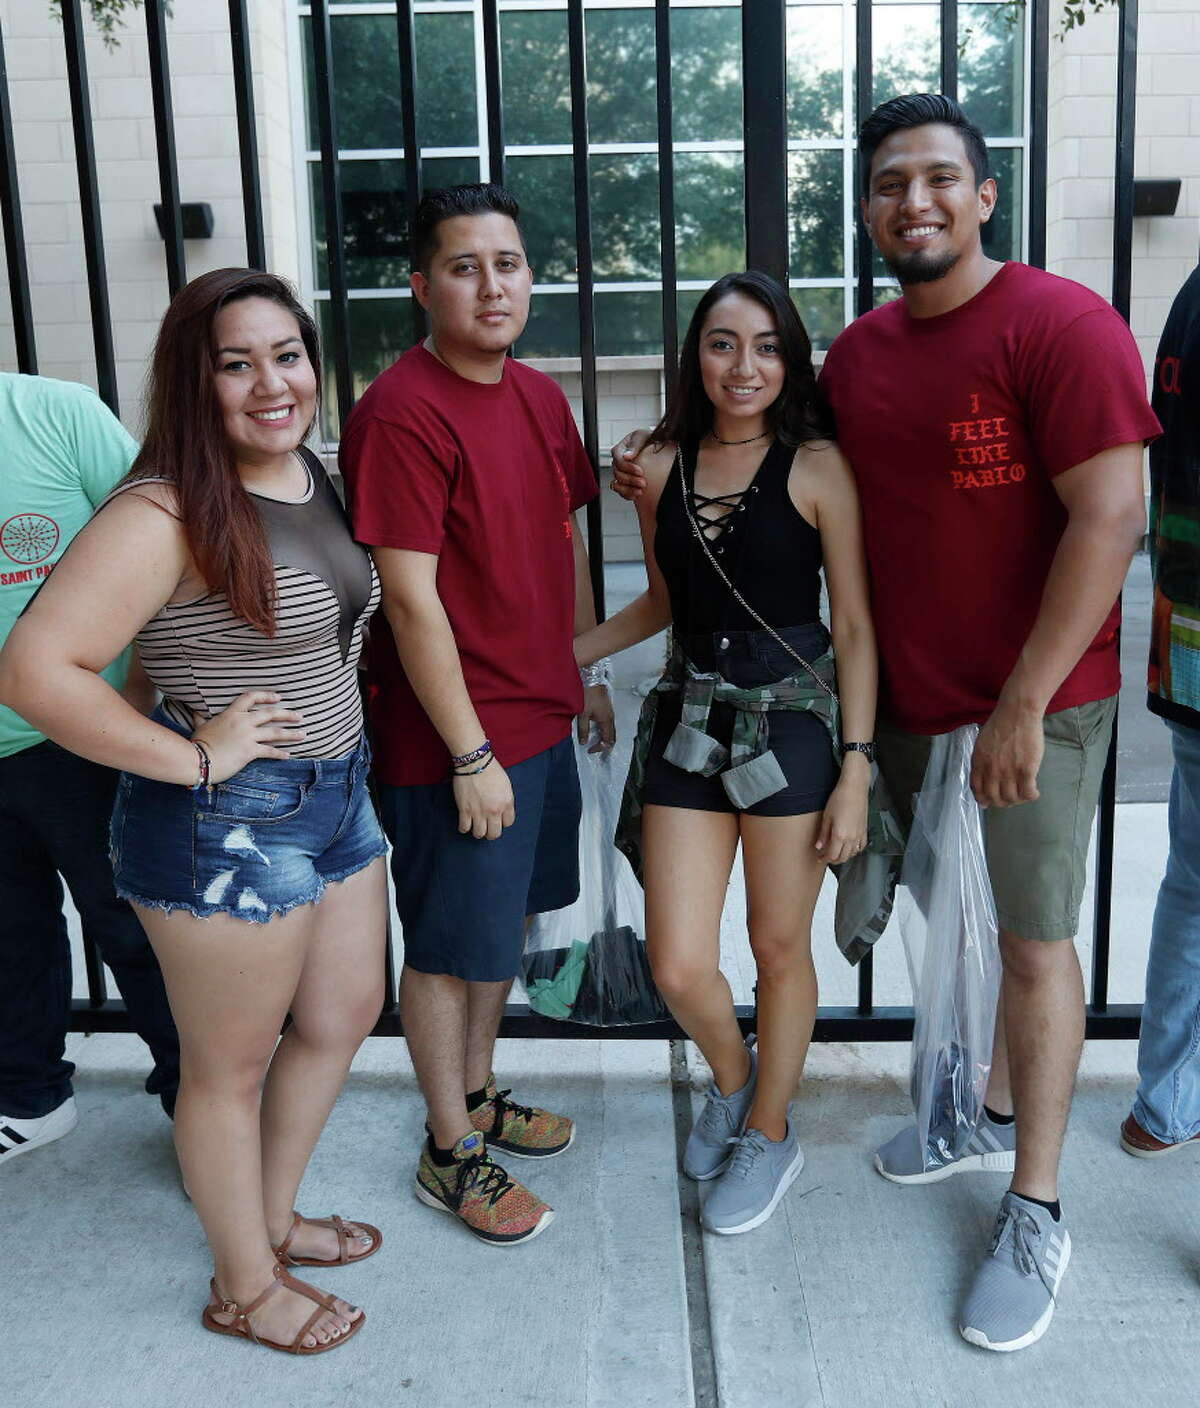 Fans line up for the Kanye West concert at Toyota Center, Tuesday, Sept. 20, 2016 in Houston. Click through for more photos from the show.